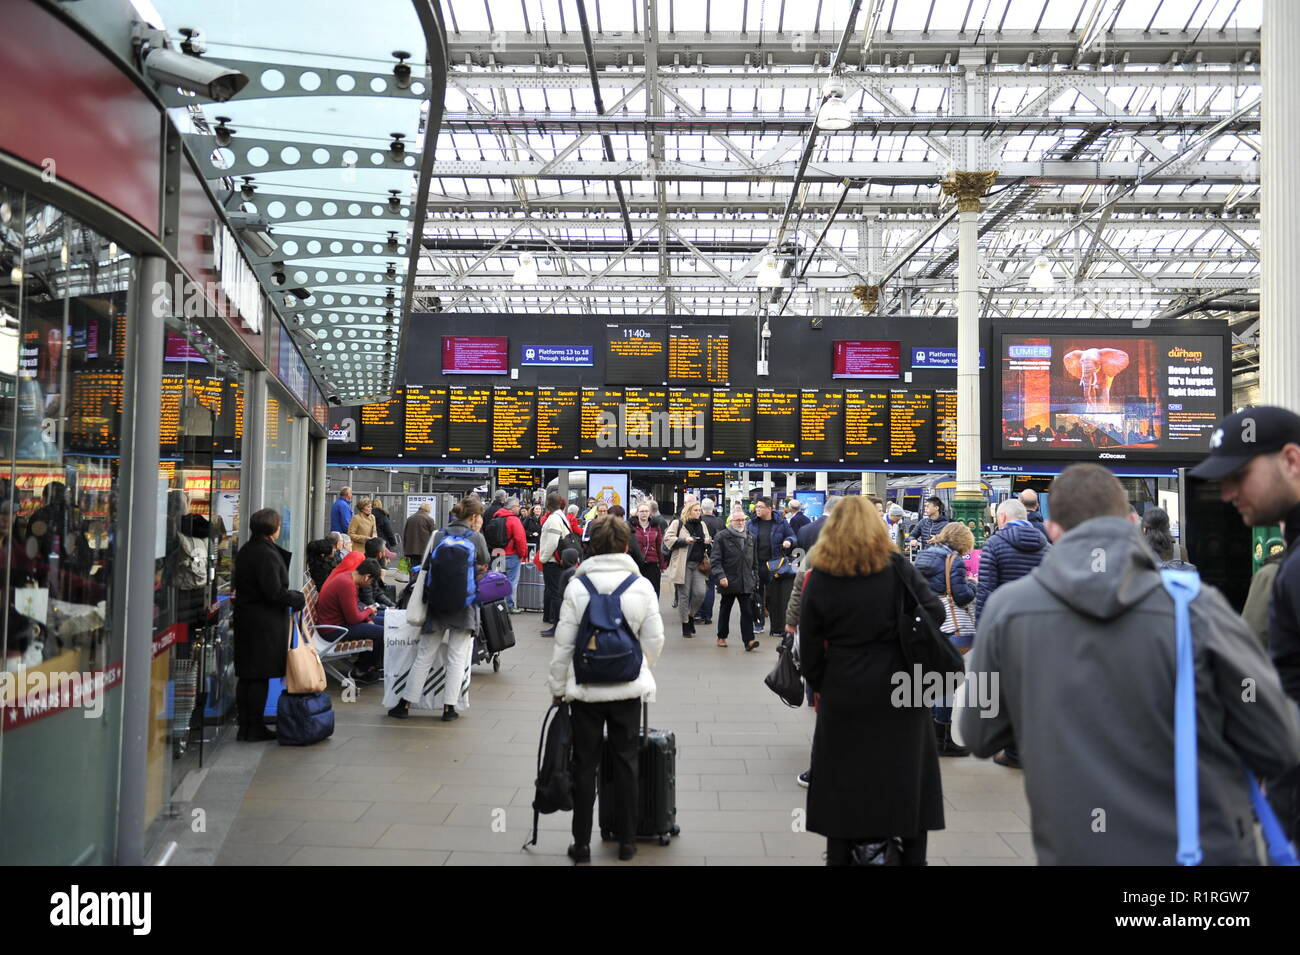 Edinburgh, UK. 14th Nov, 2018. Destination - who knows? A rally at Waverley station ahead of a Holyrood vote calling for the ScotRail break clause to be exercised, Scottish Labour leader Richard Leonard and Transport spokesperson Colin Smyth were in attendance . Credit: Colin Fisher/Alamy Live News Stock Photo